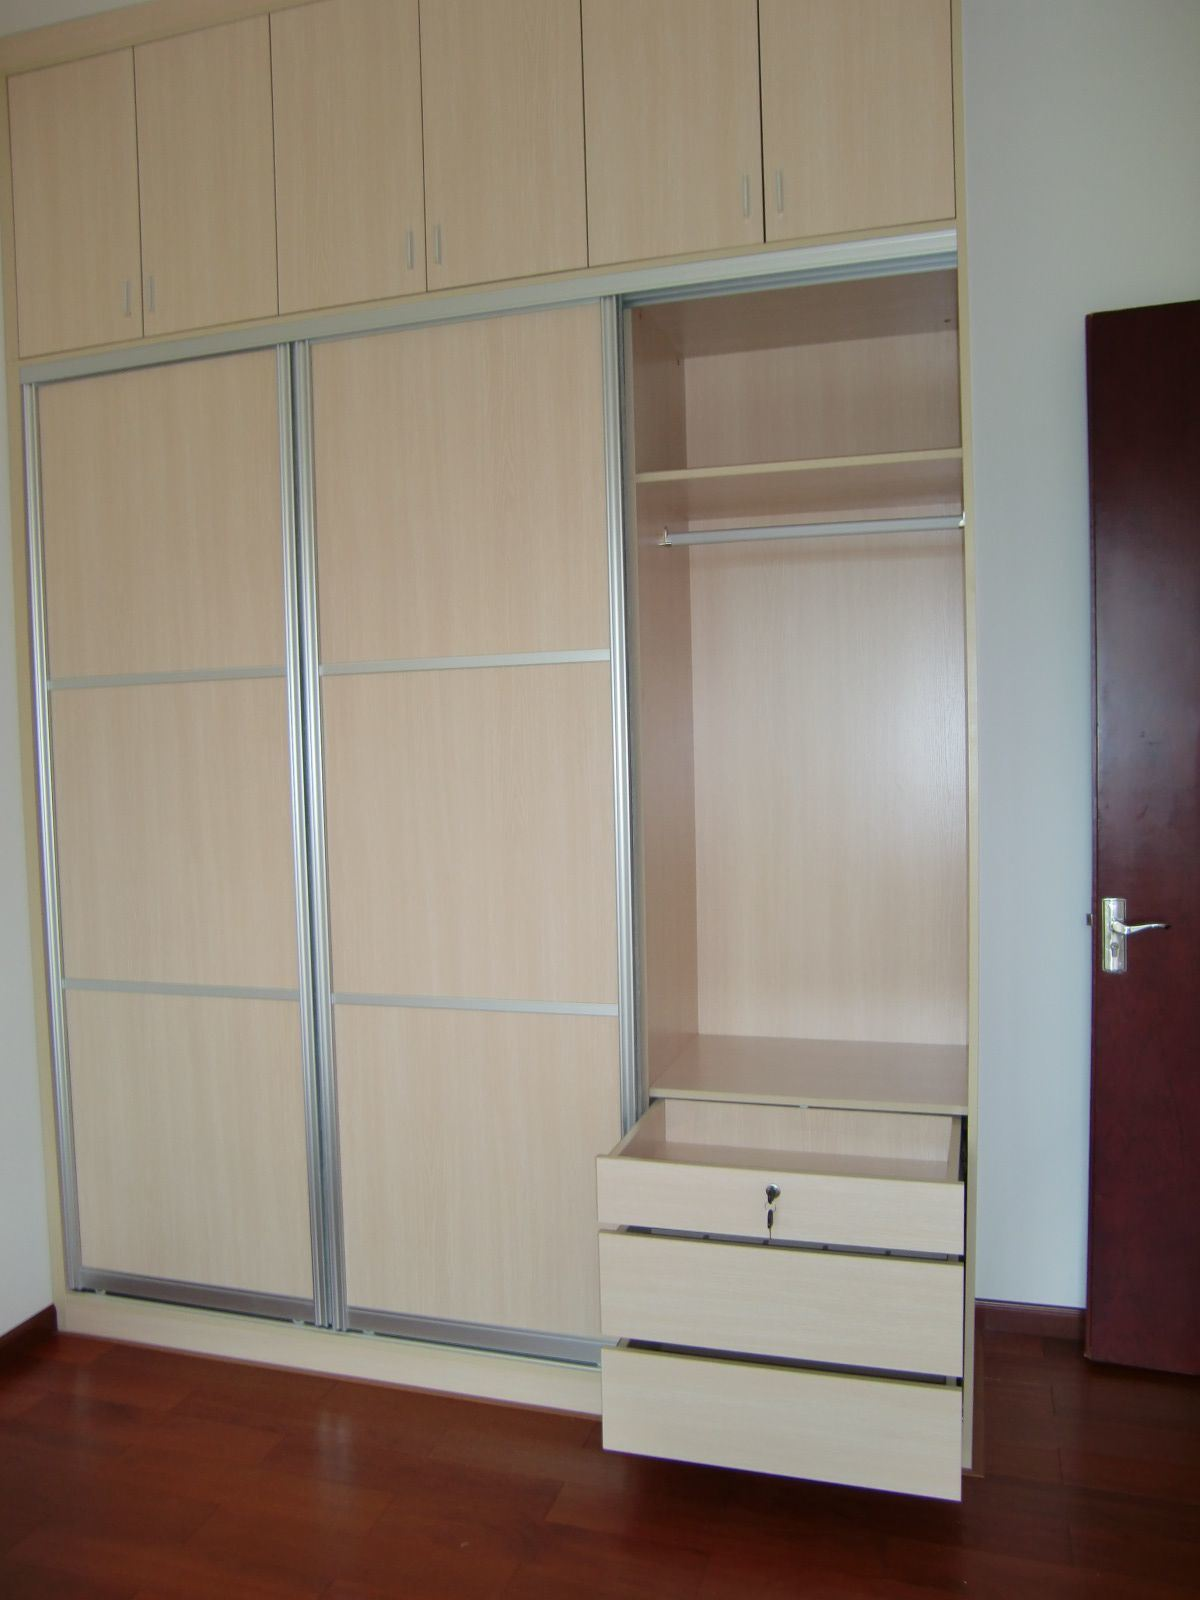 pics photos bedrooms wardrobes